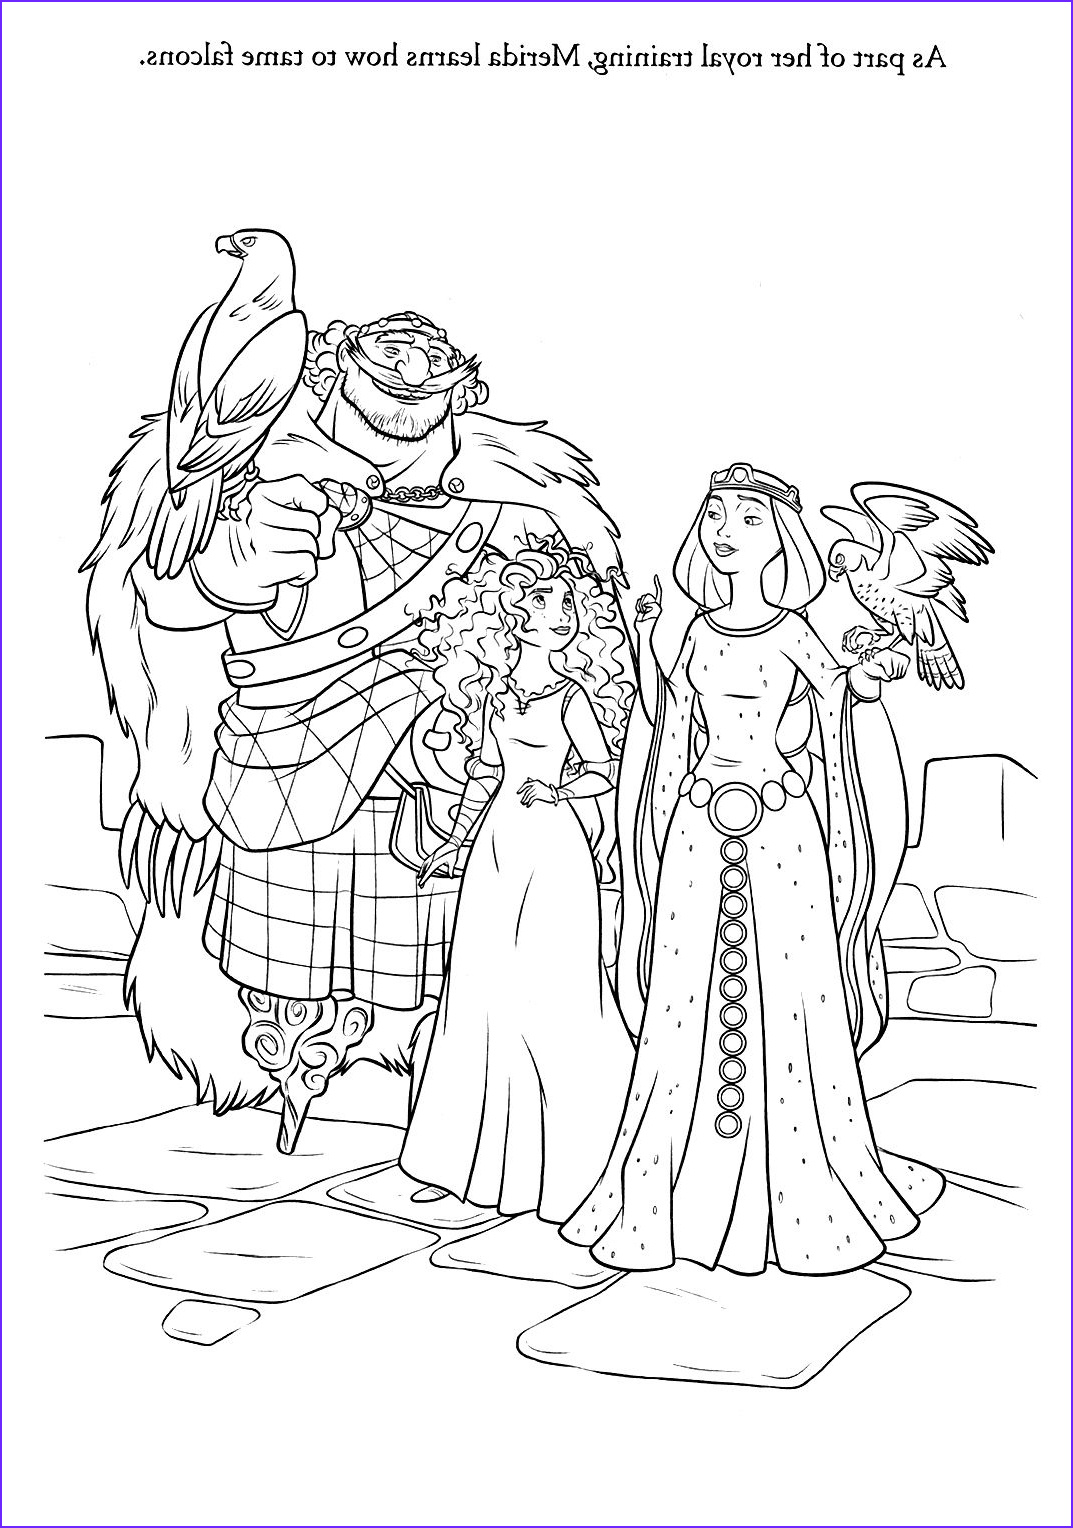 Disney Adult Coloring Book Inspirational Image Disney Coloring Pages Add Color to It